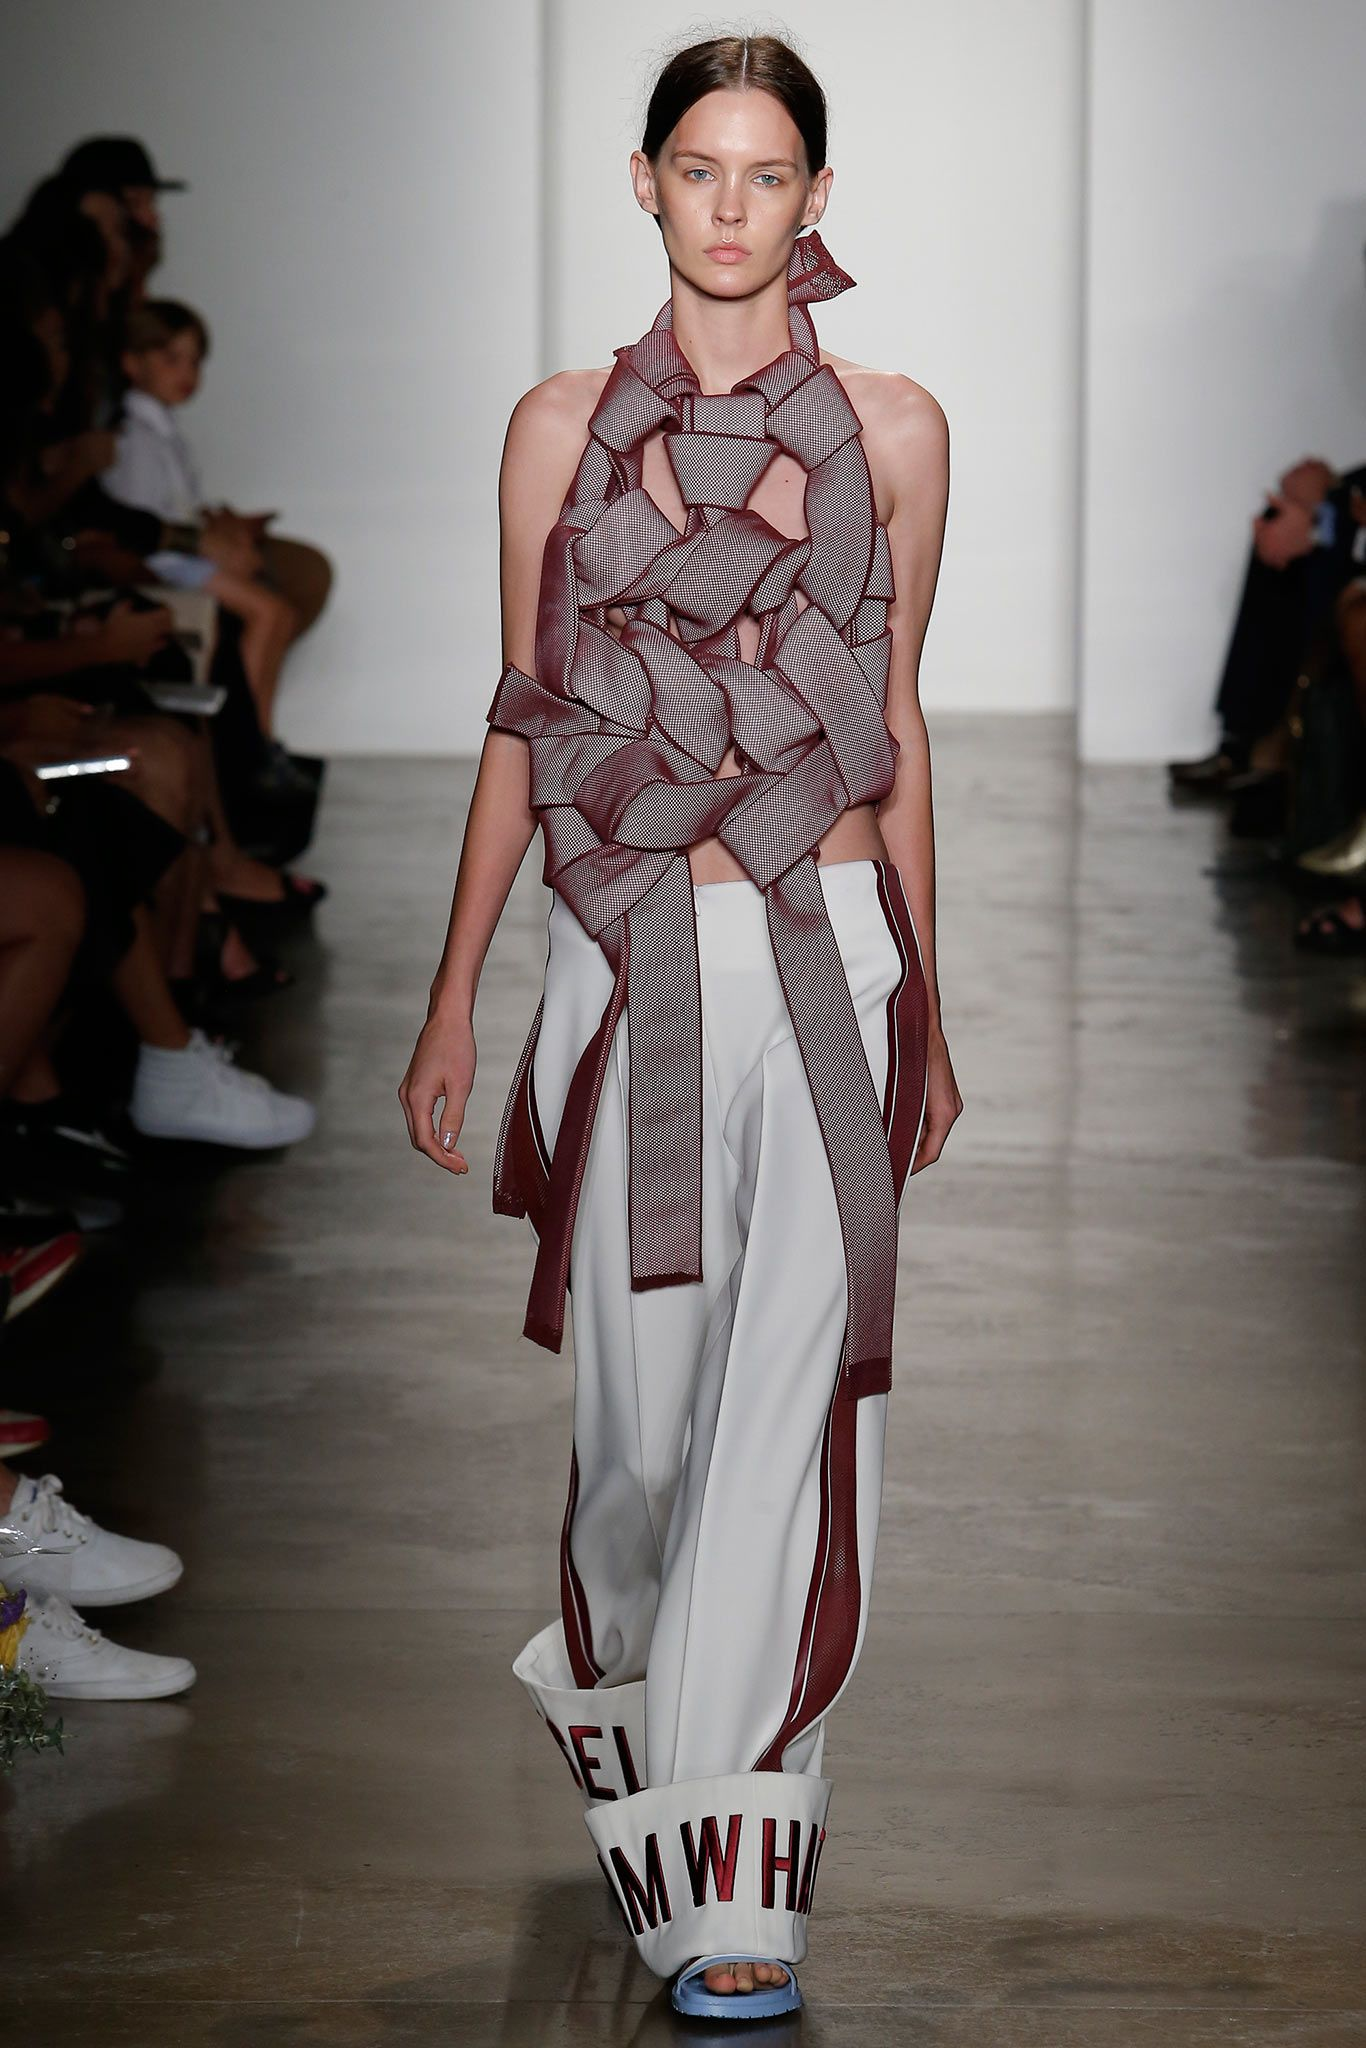 Mfa Fashion Design And Society At Parsons Spring 2015 Ready To Wear Collection With Images Textiles Fashion Fashion Fashion Show